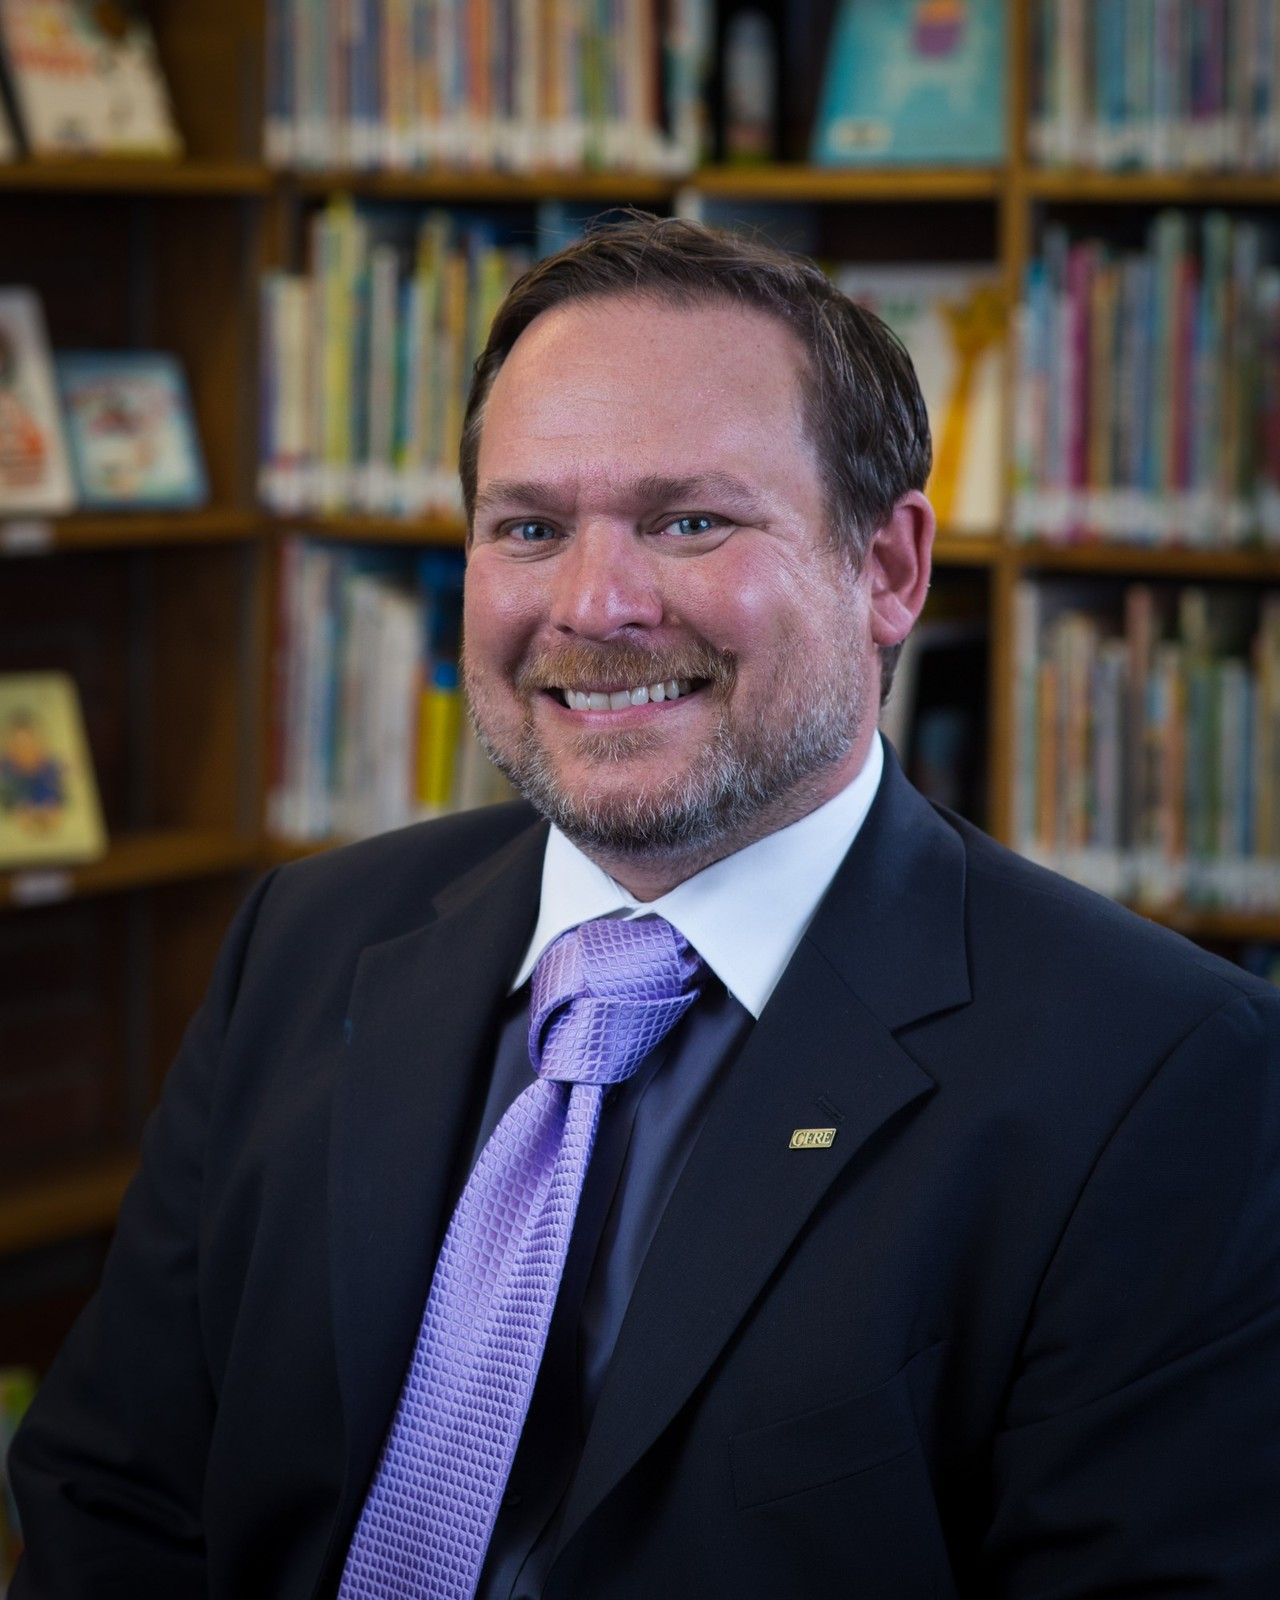 Perry Jowsey, Executive Director